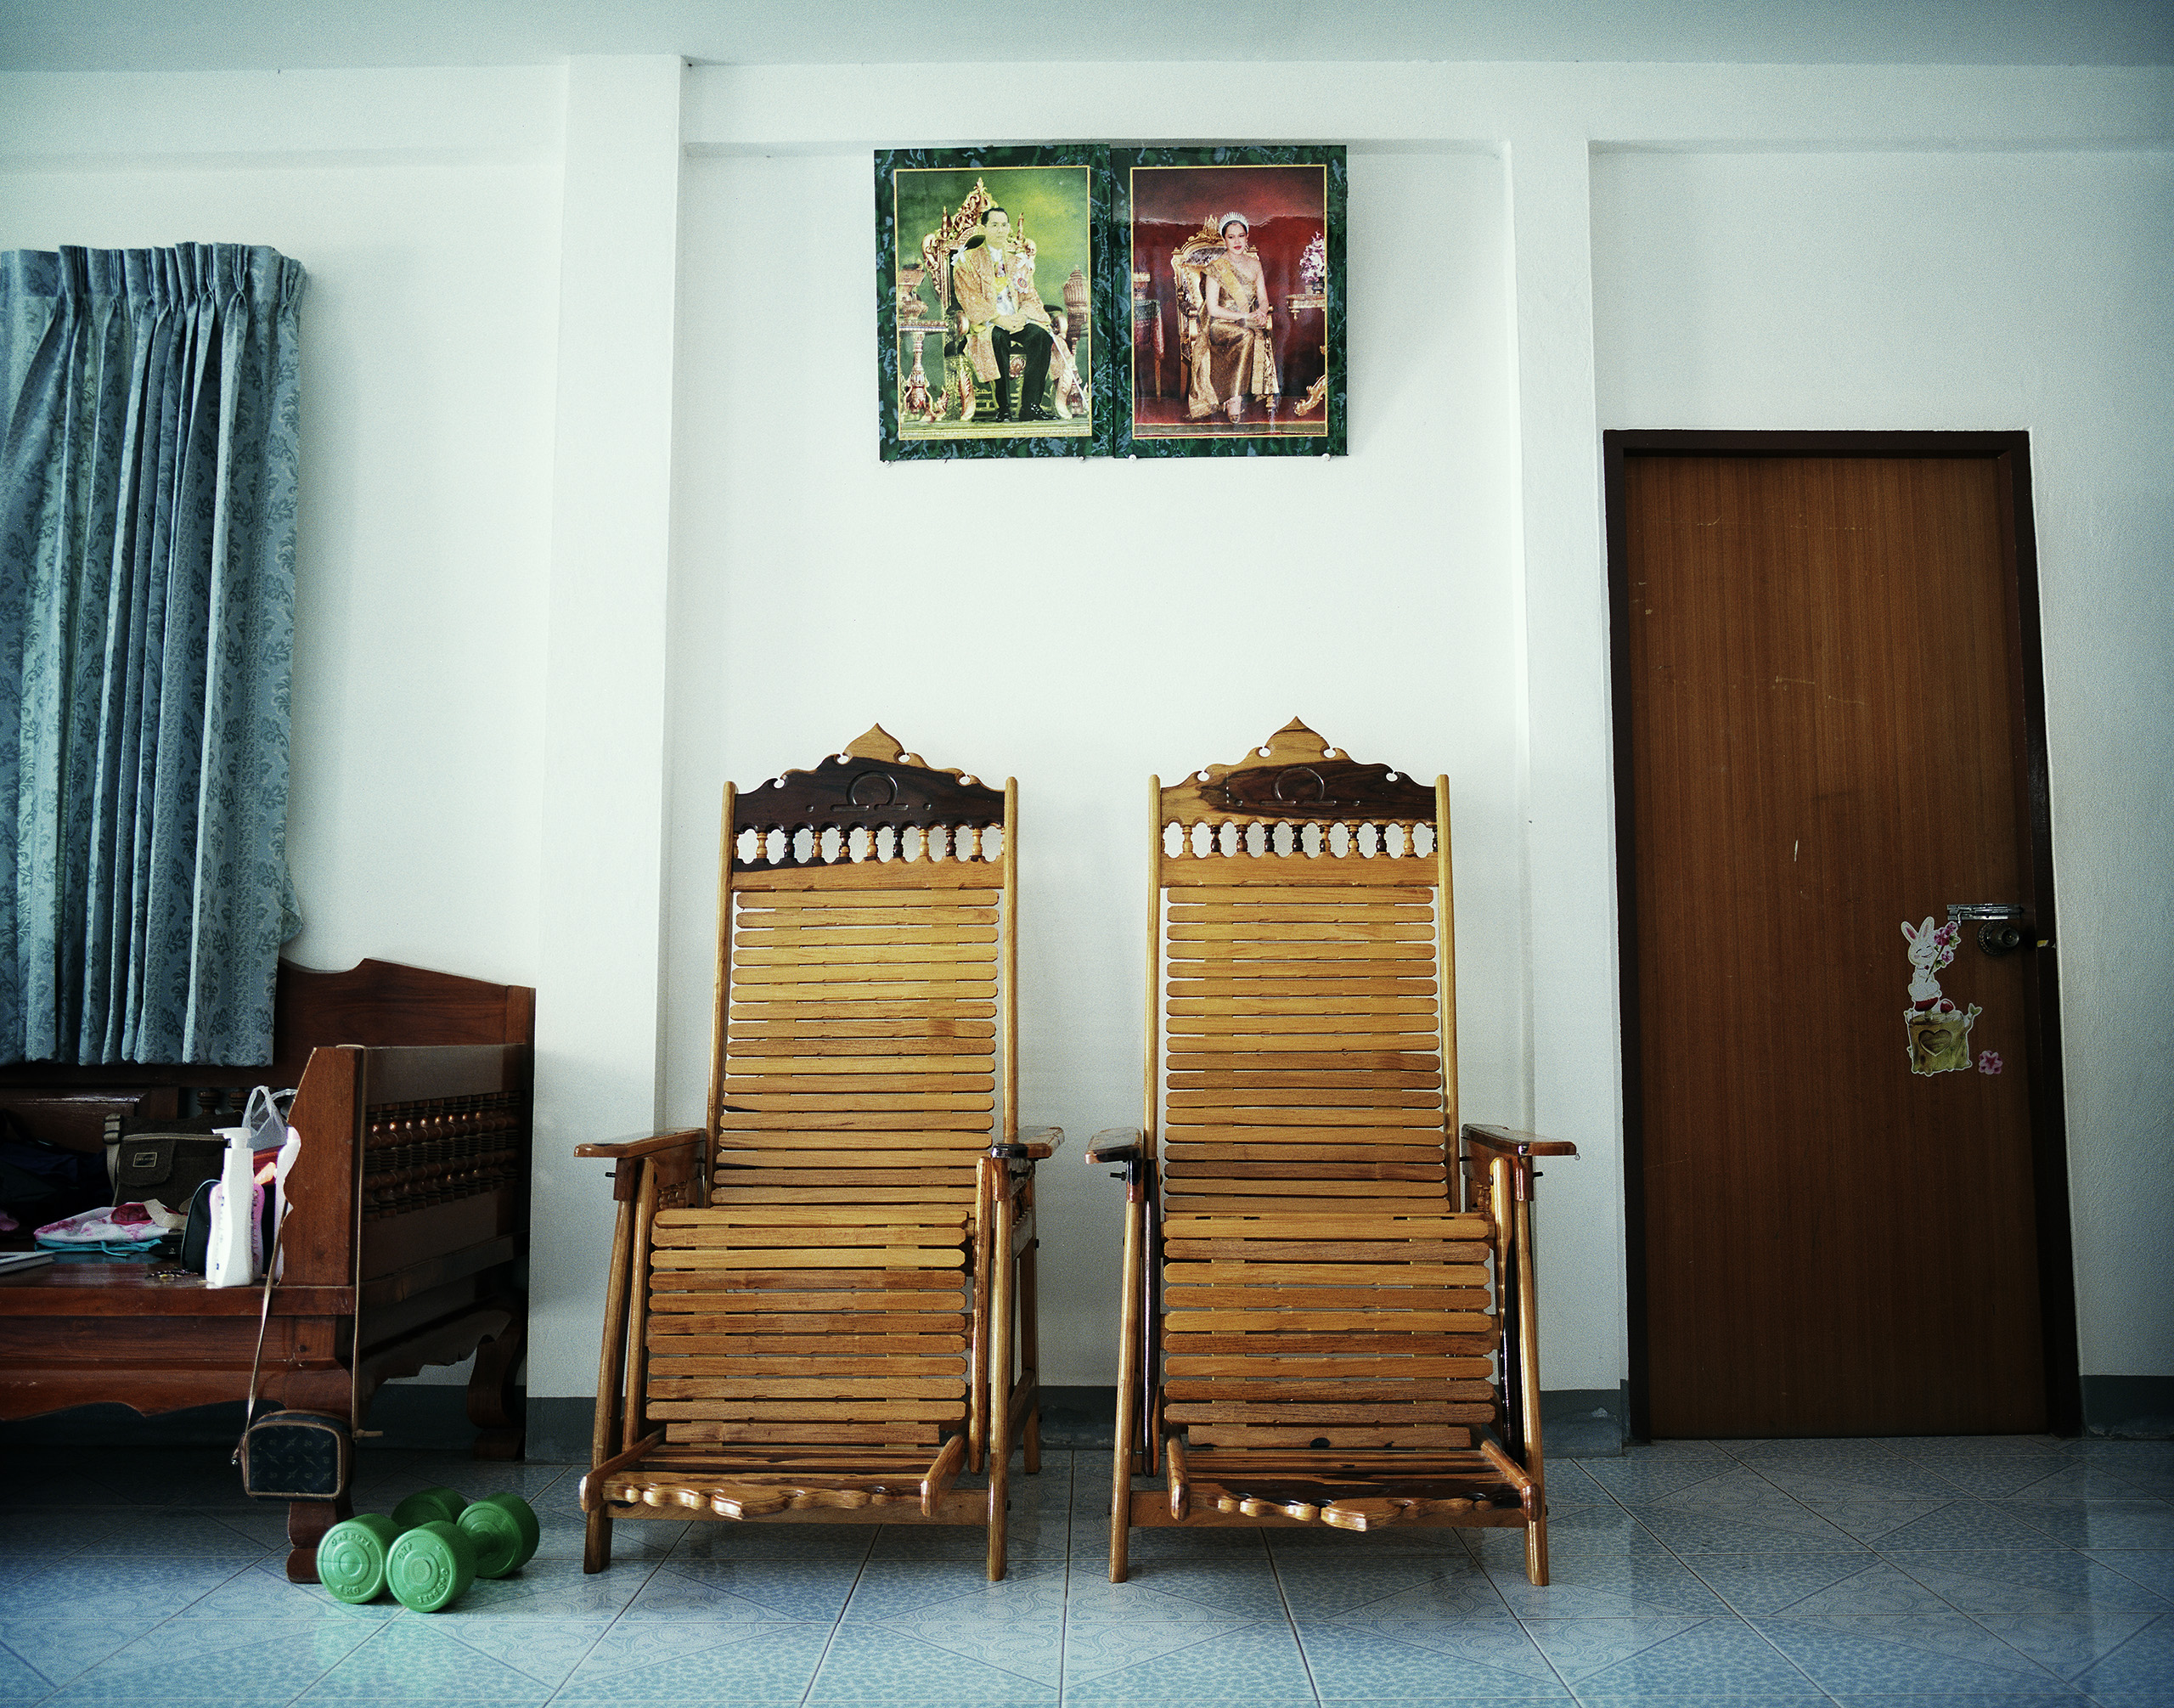 Inside Arne's and Mayura's house, which they built for themselves and Mayura's mother, Kaeng Khro, 2012.